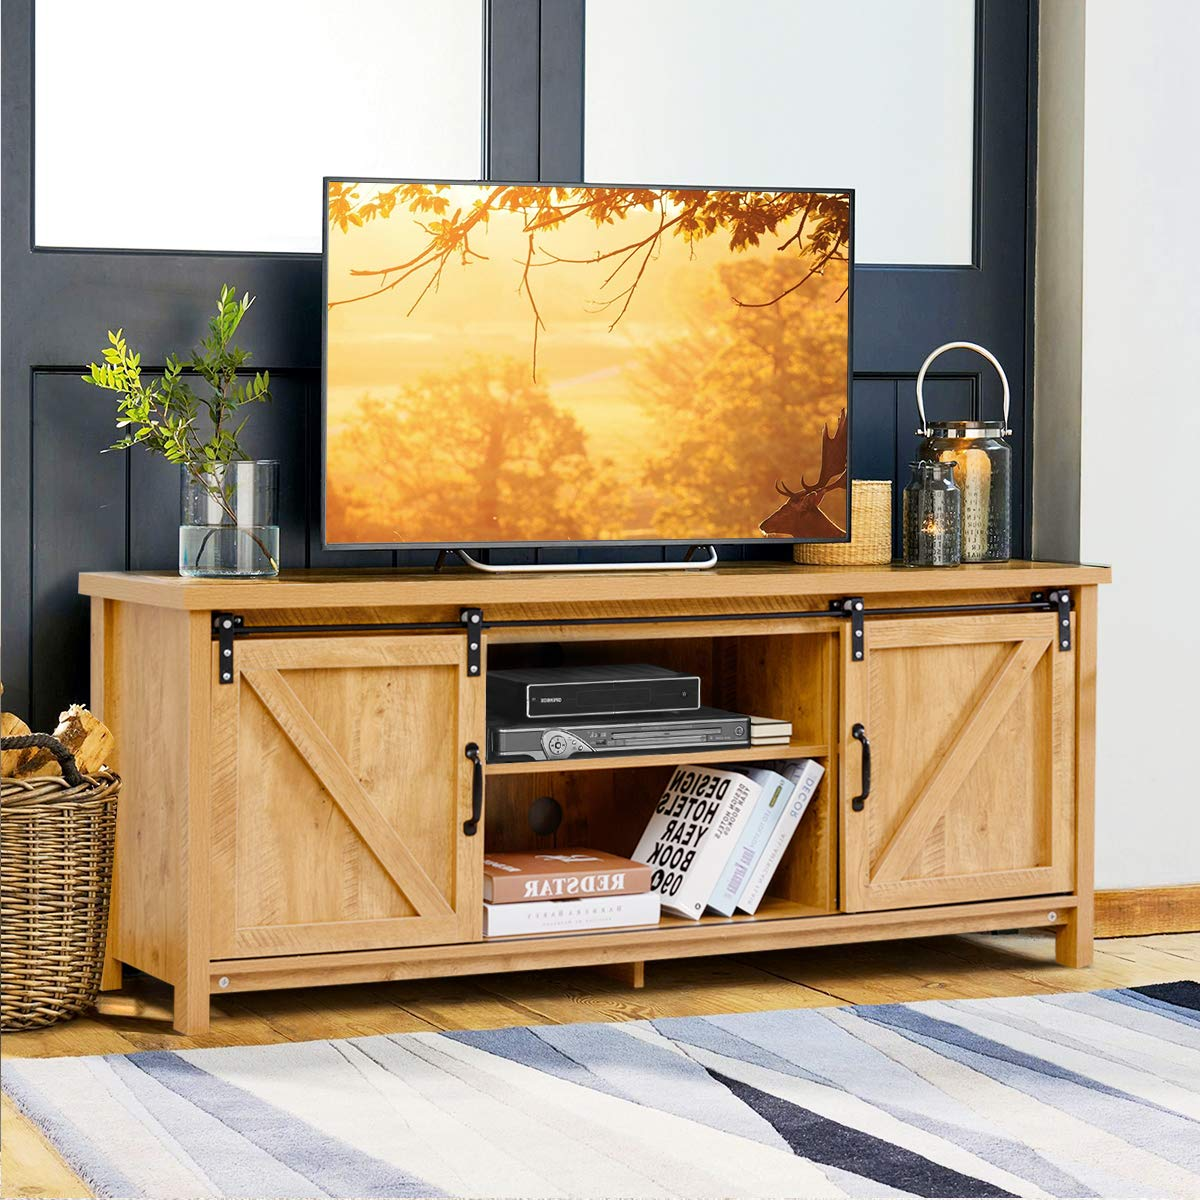 Tangkula TV Stand for 60 Television, TV Ark with Sliding Barn Doors, Wooden TV Cabinet with 2 Center Compartments and 2 Cabinets, Console Storage Table with Cabinet, Natural Design Golden Oak